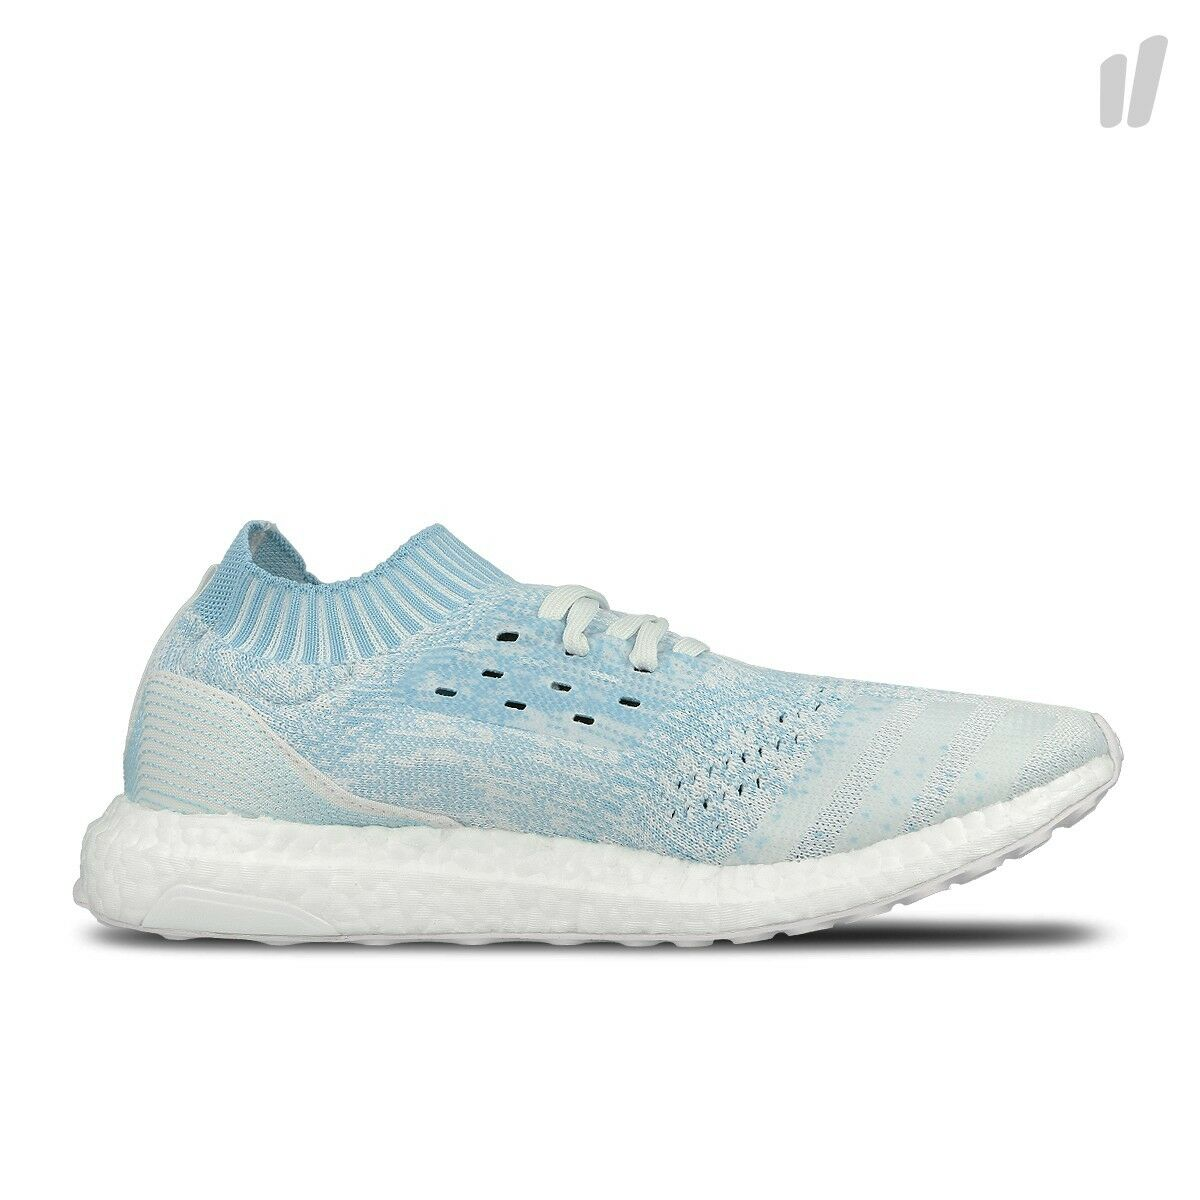 NEW Adidas Parley Ocean Ultra Boost Uncaged Uncaged Uncaged Weiß   ICEY Blau CP9686  - Limited 36743d